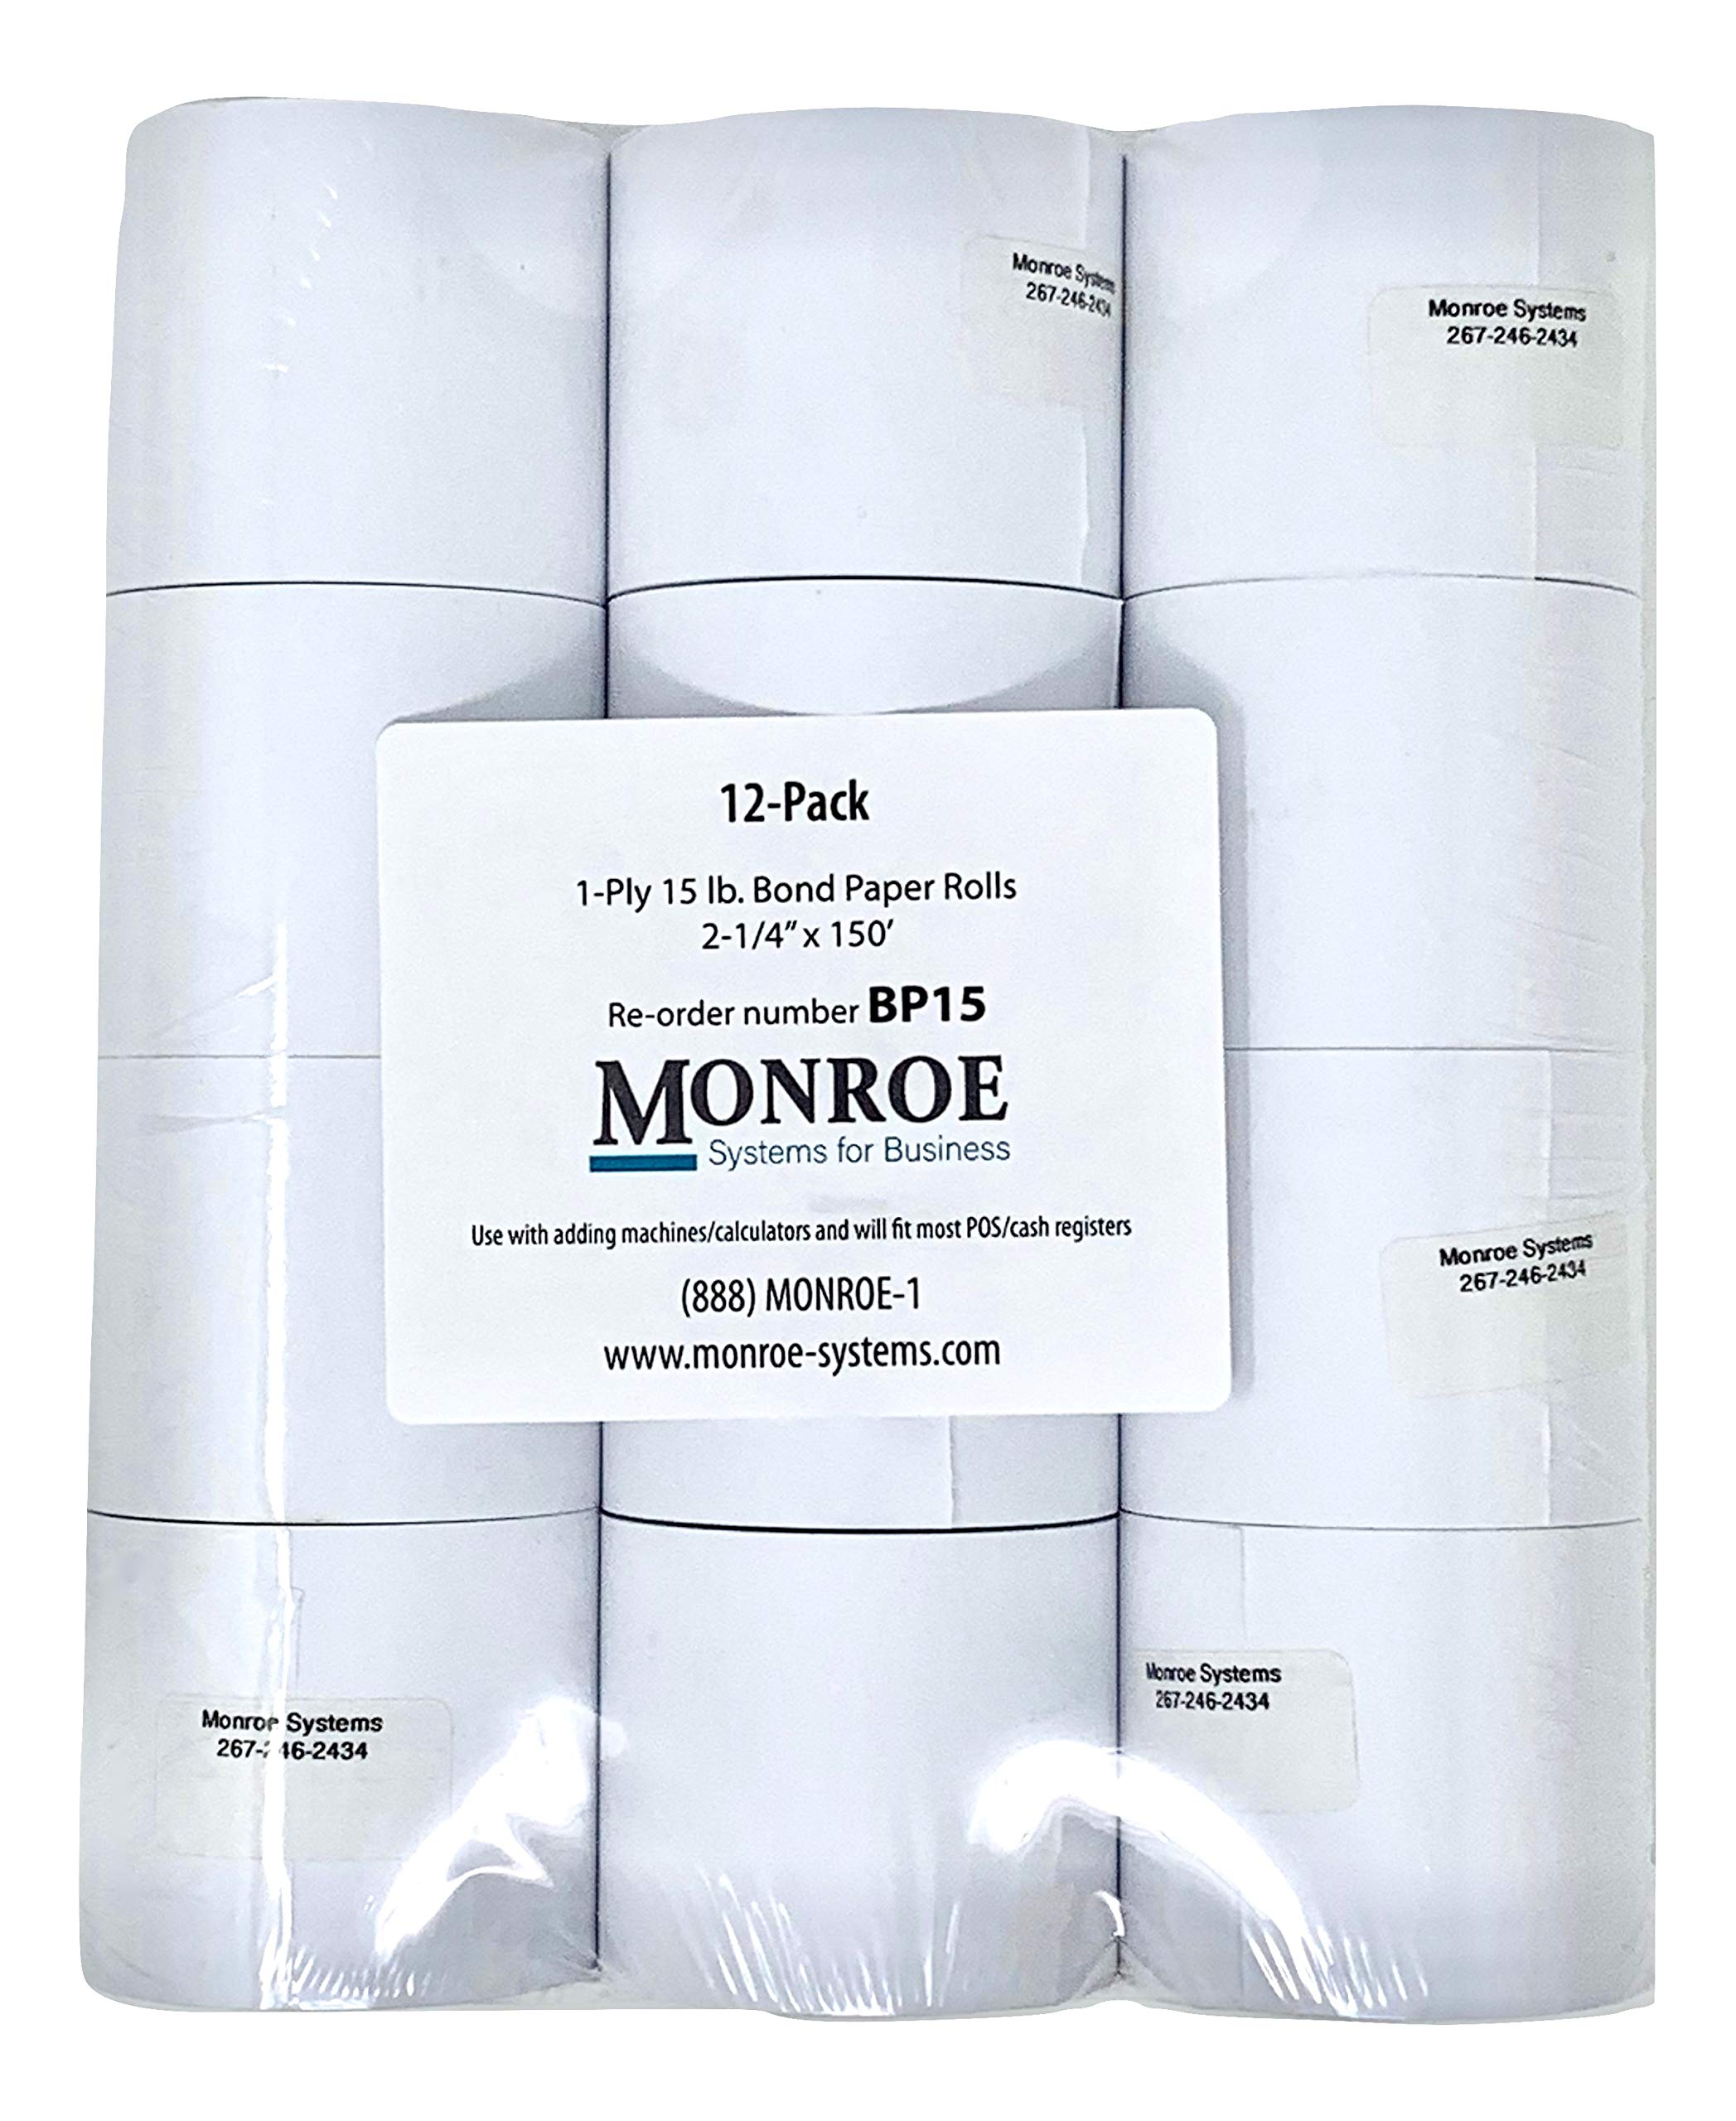 Monroe Systems for Business 15 Pound Bond Paper Rolls, Single Ply, 2 1/4'' x150' for Cash Registers, Printing Calculators, Adding Machines and more! (12-Pack)